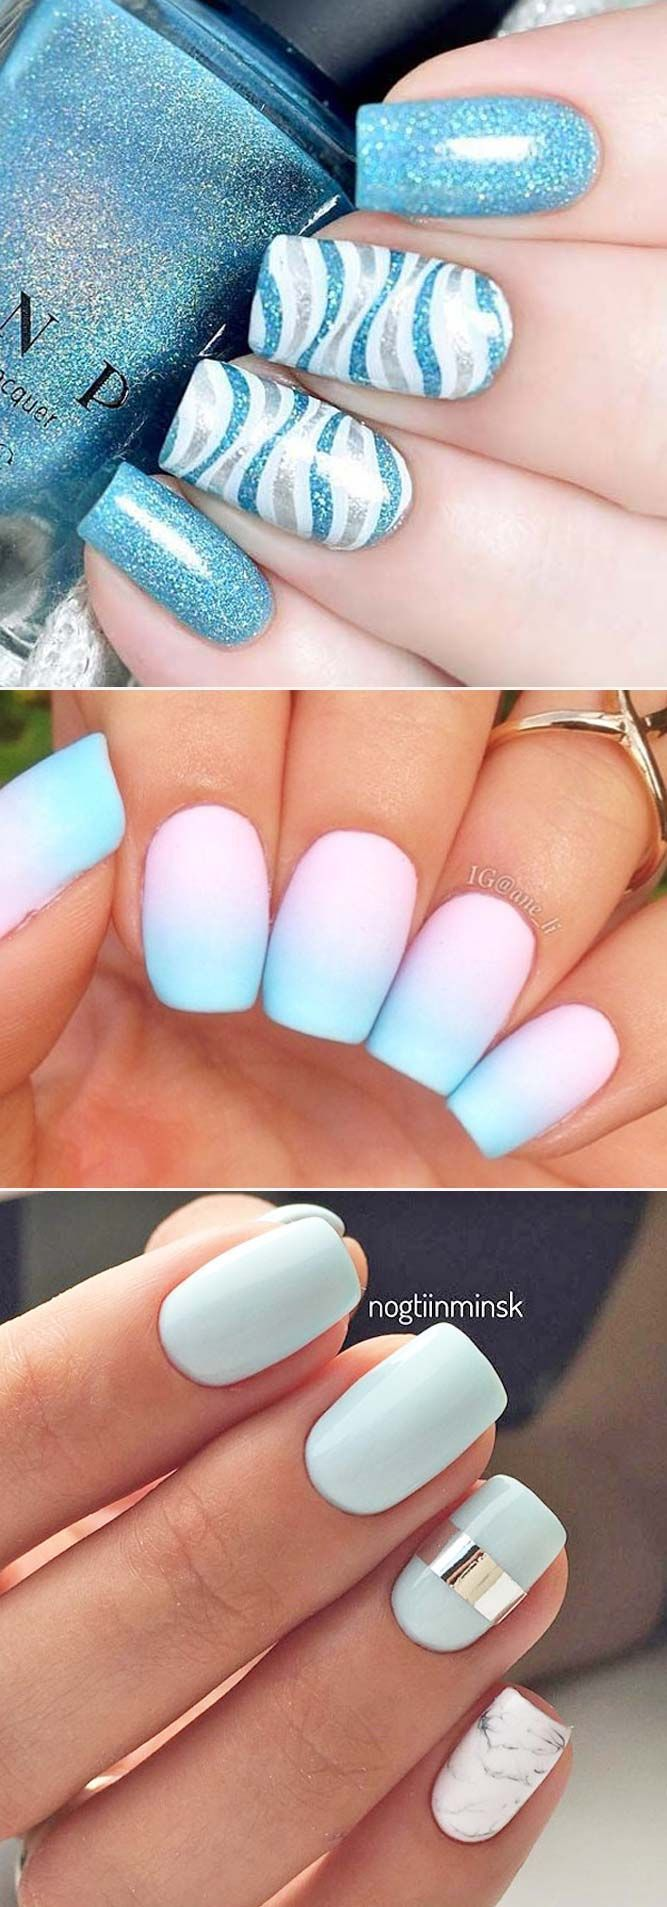 Looking for some new fun designs for summer nails? Check out our ...